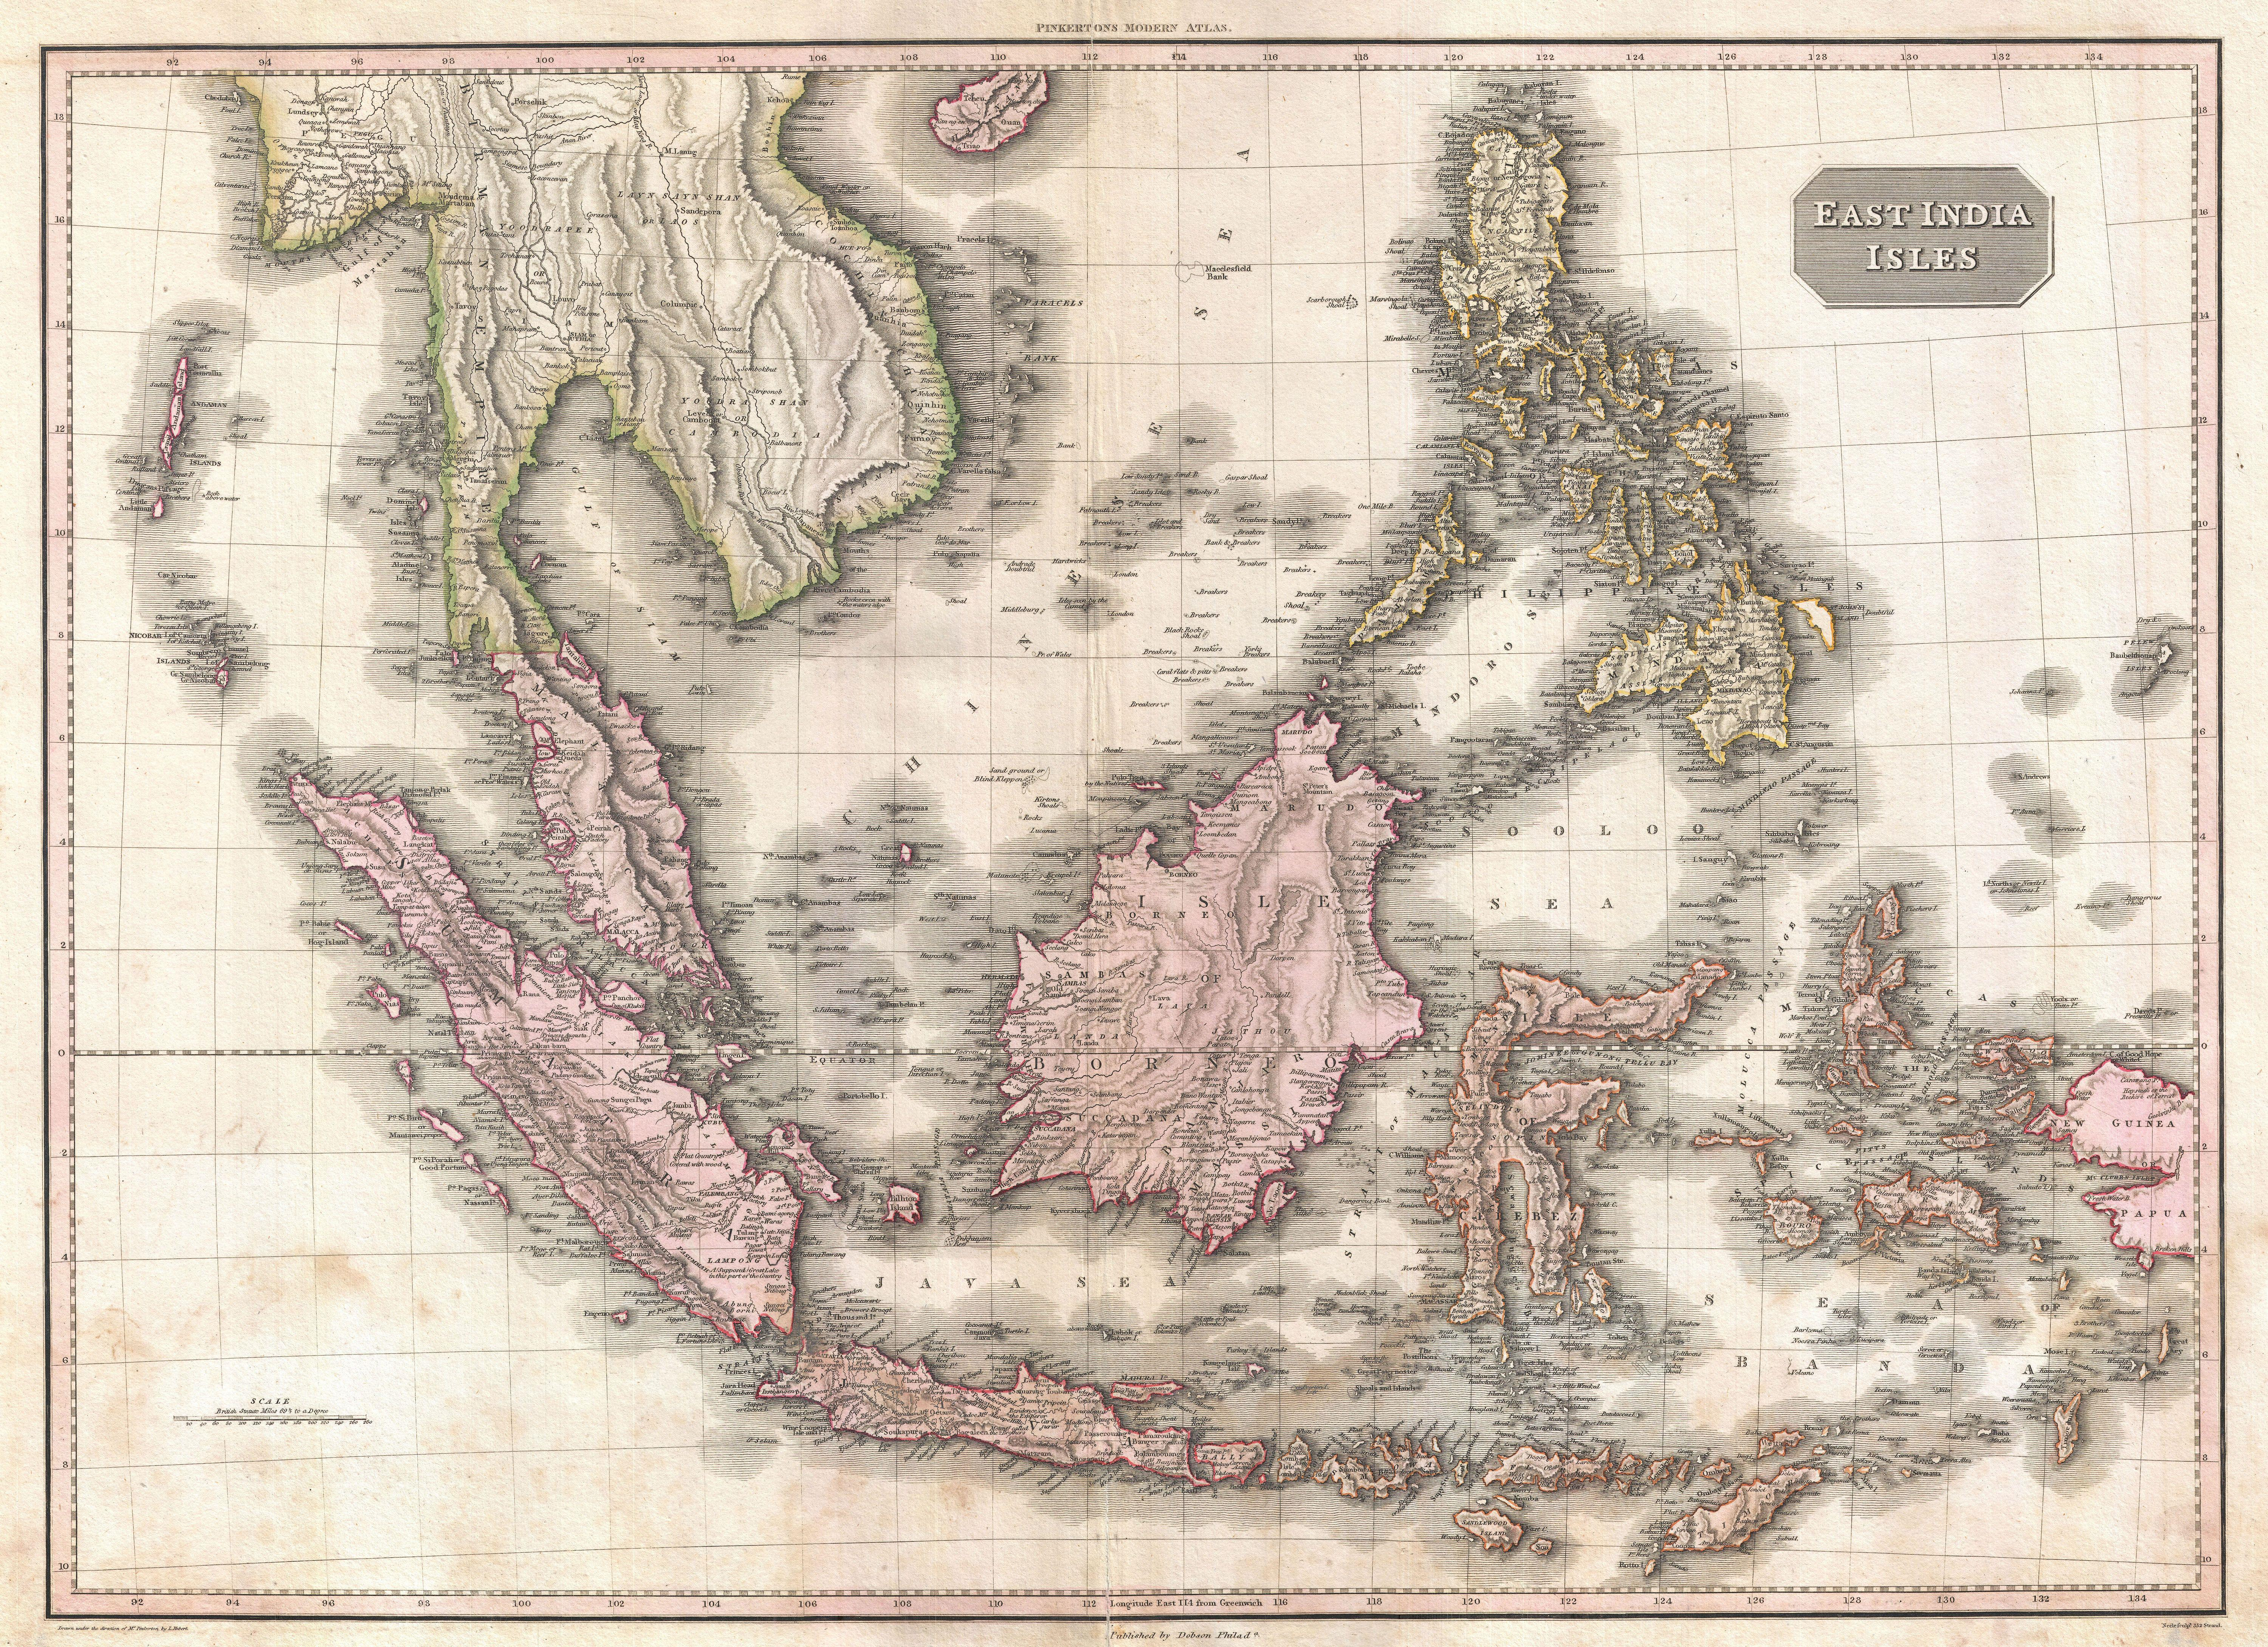 Pinkerton Map of the East Indies and Southeast Asia, 1818